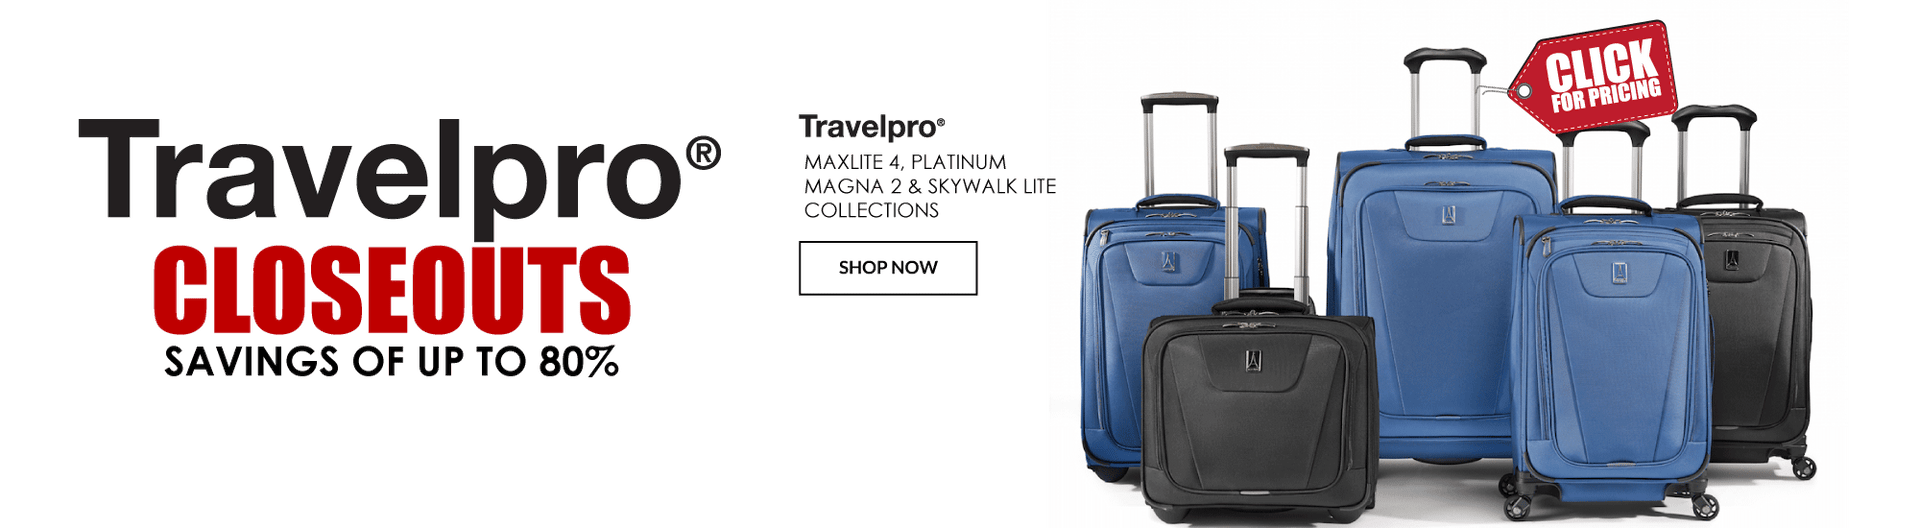 Travelpro Luggage Sale - Canada Luggage Depot